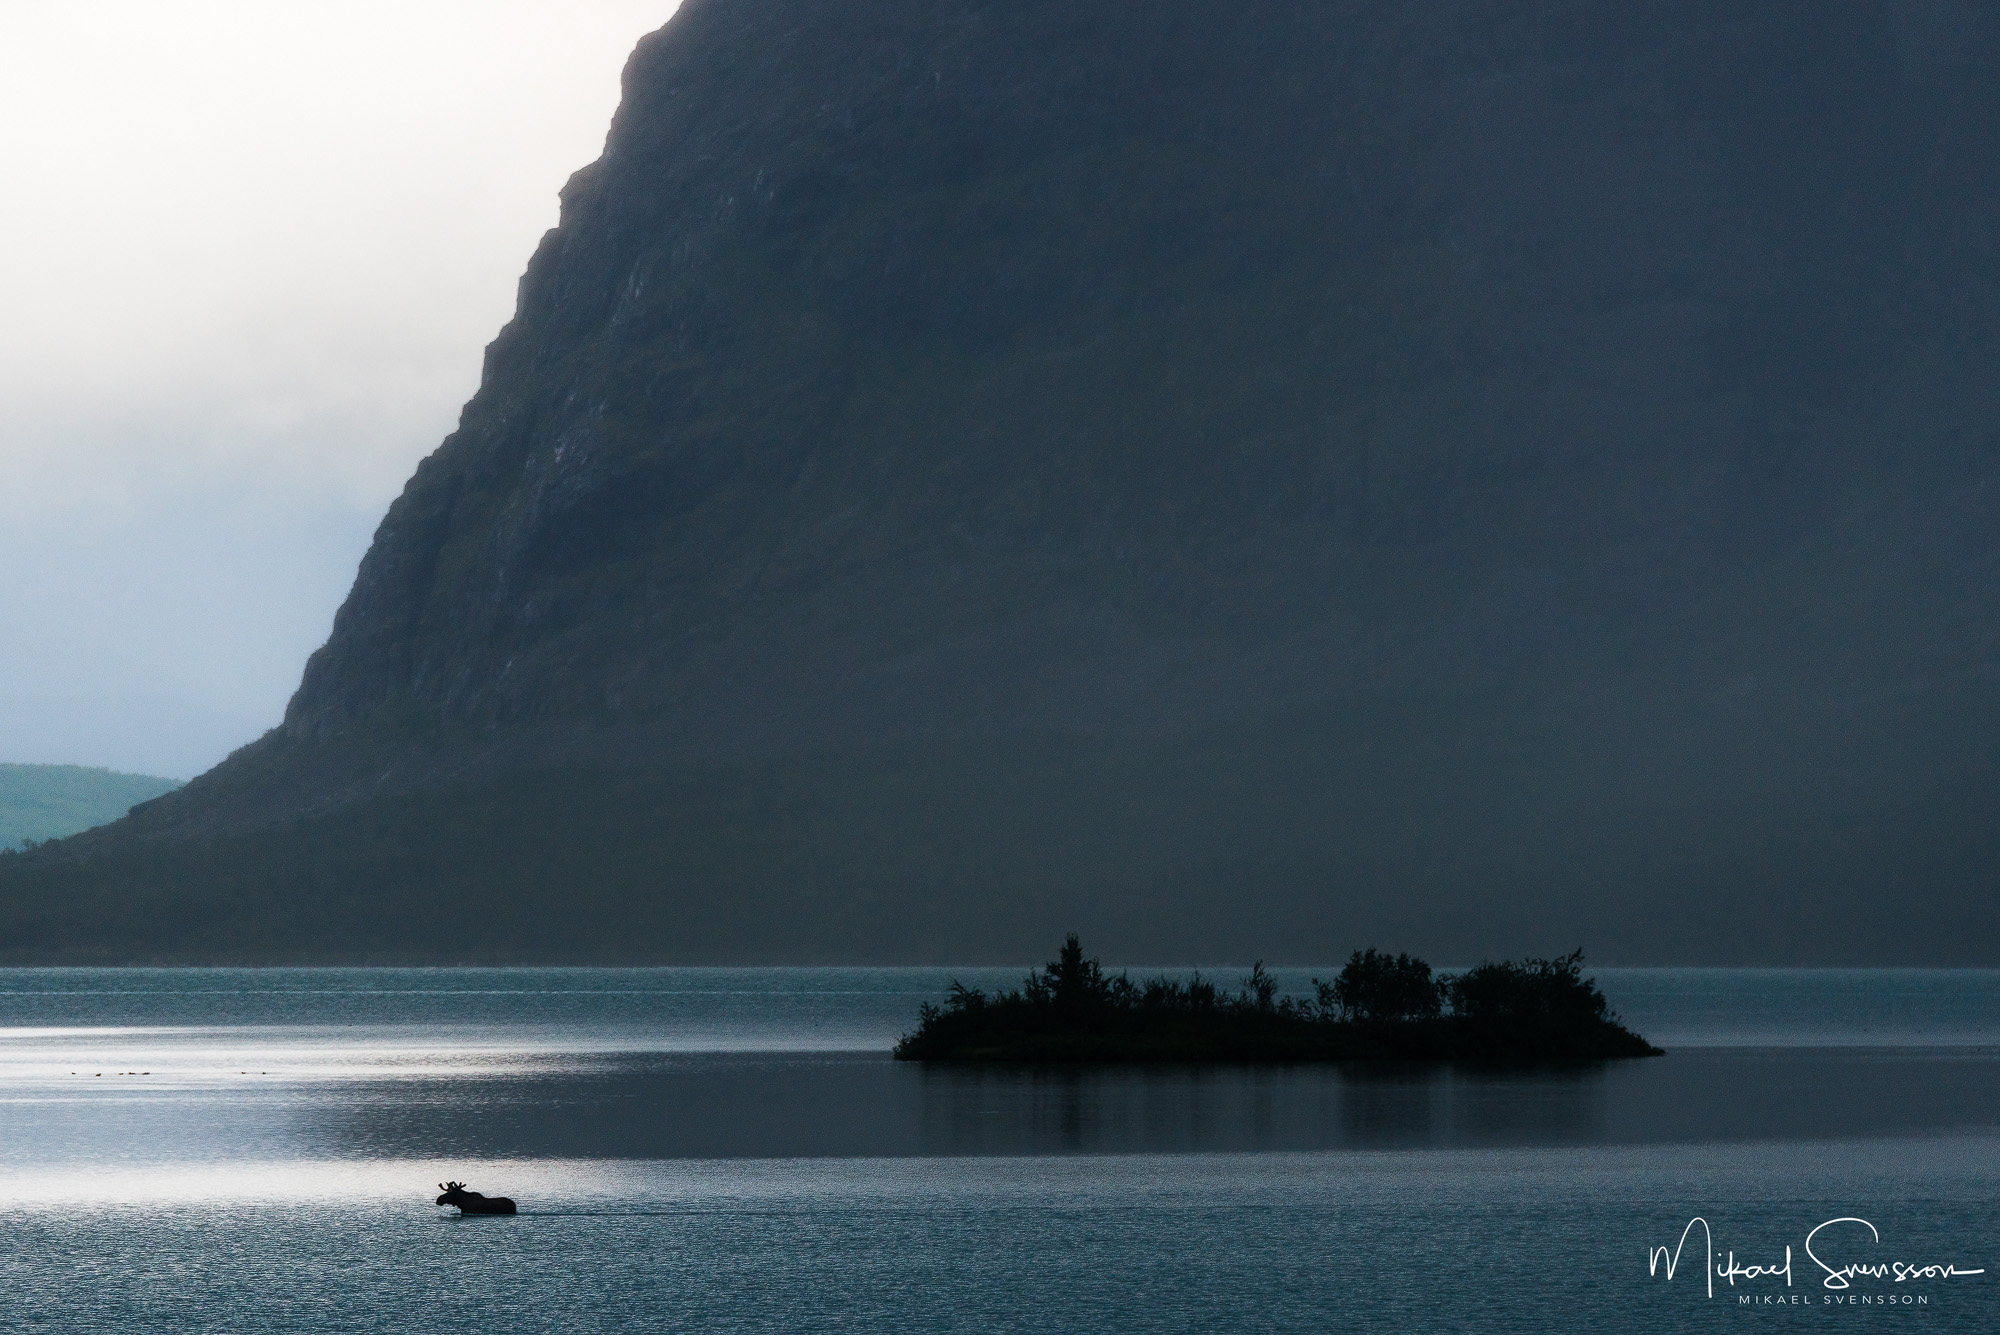 Silhouette of a moose swimming in a lake by an island and towering cliff